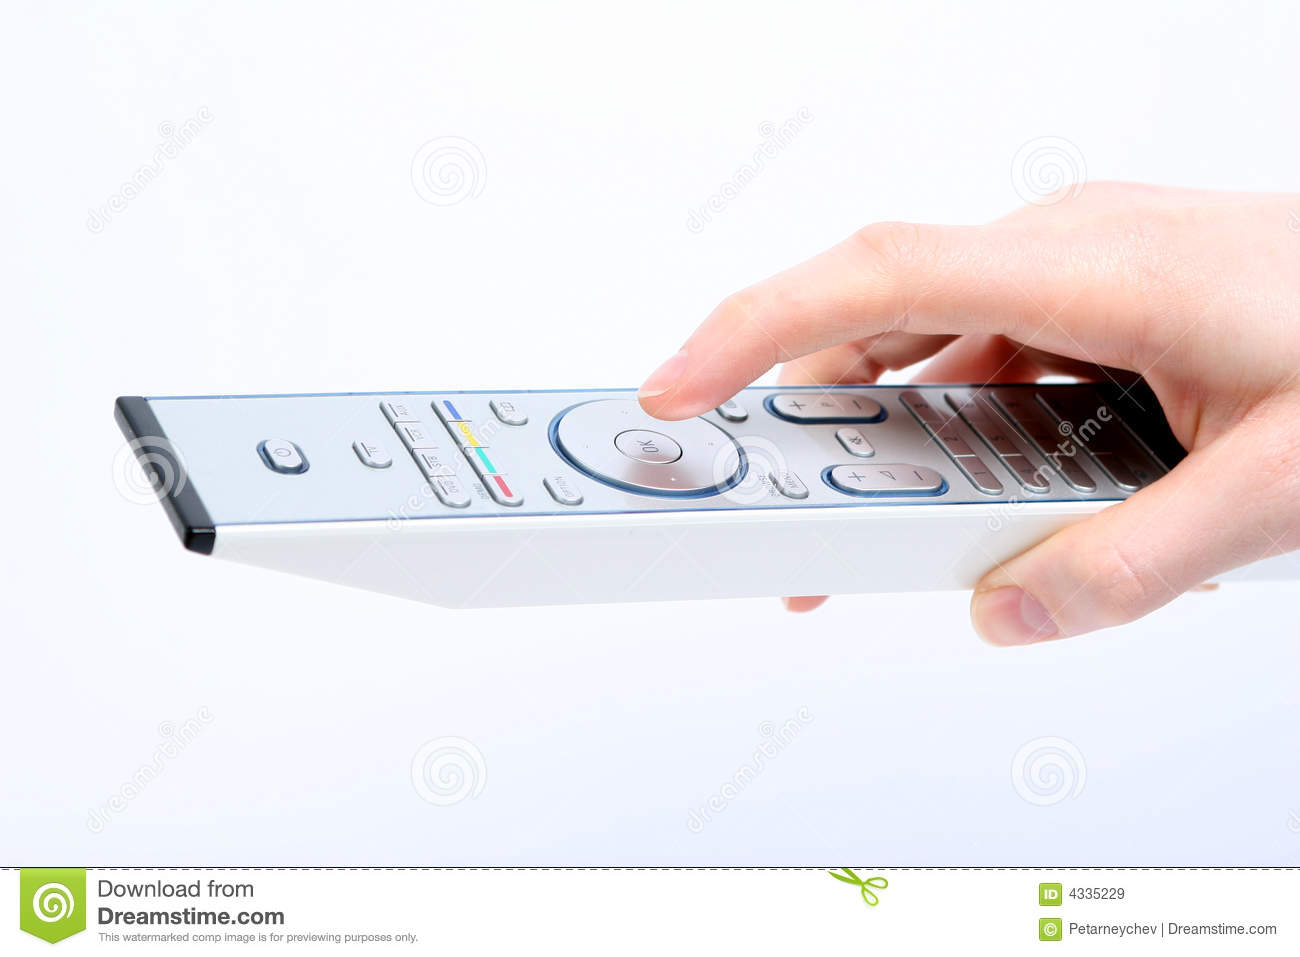 Clicking OK on the TV Remote